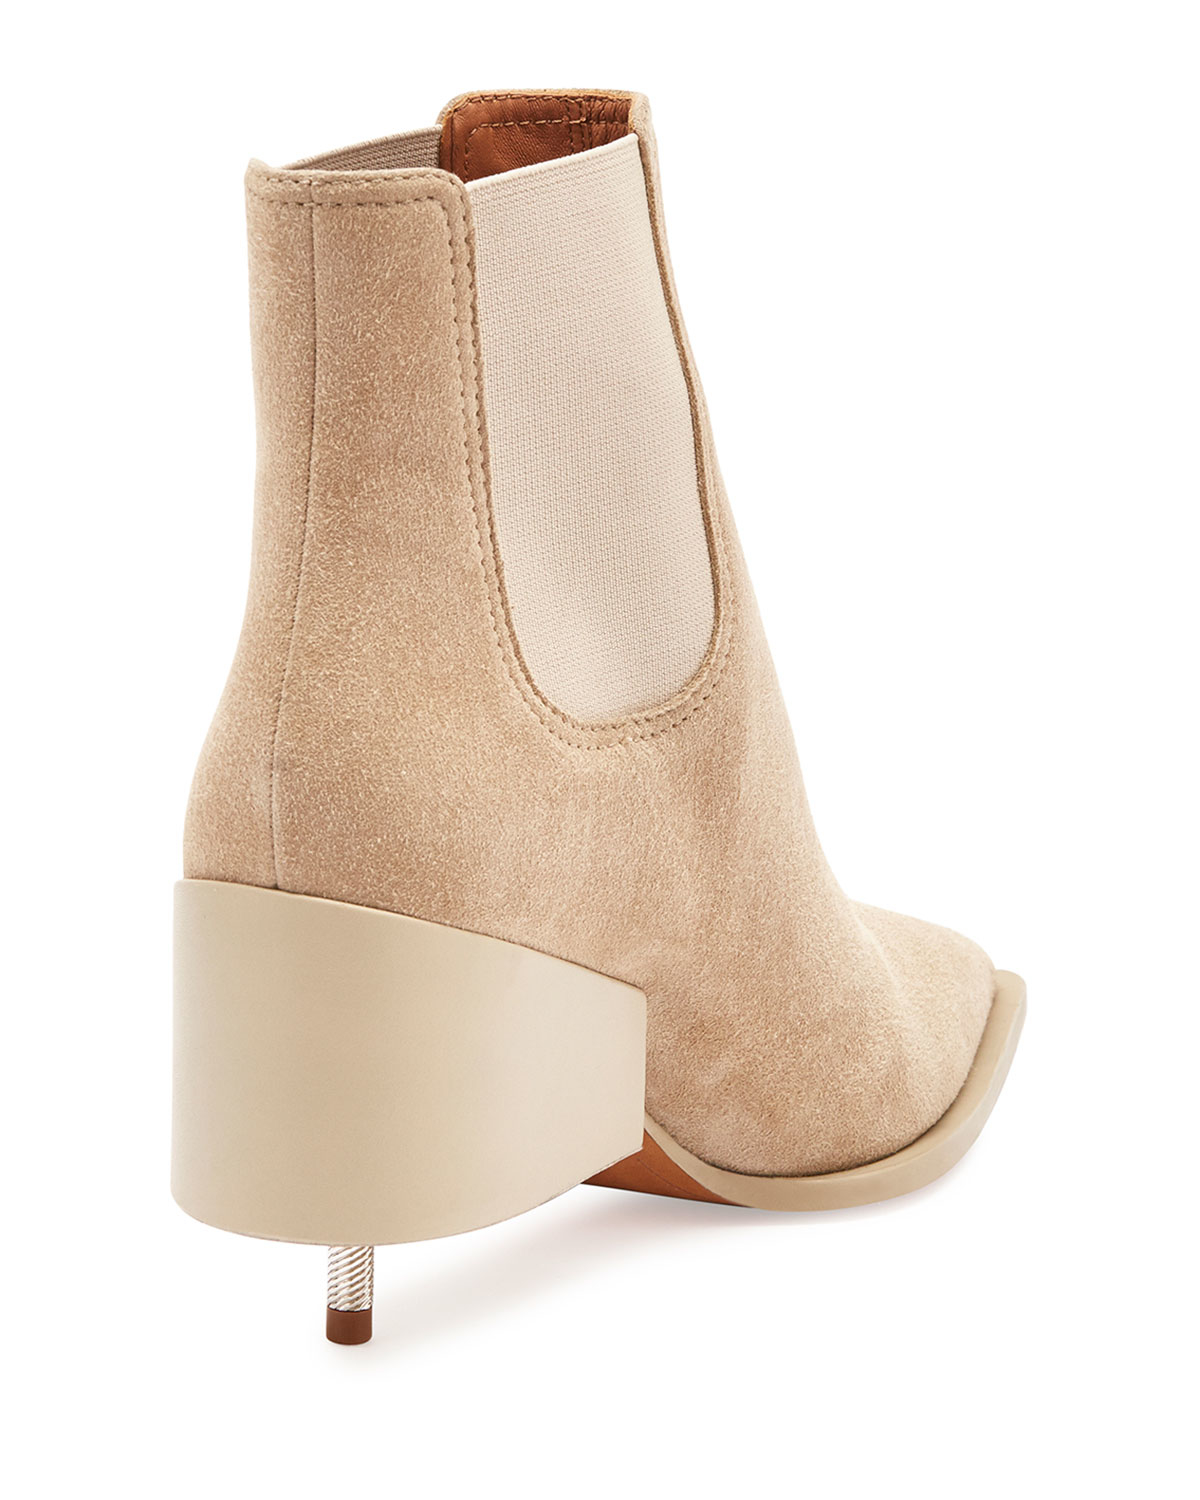 Lyst - Givenchy Screw-Heel Suede Chelsea Boots in Natural 62ff5d37e